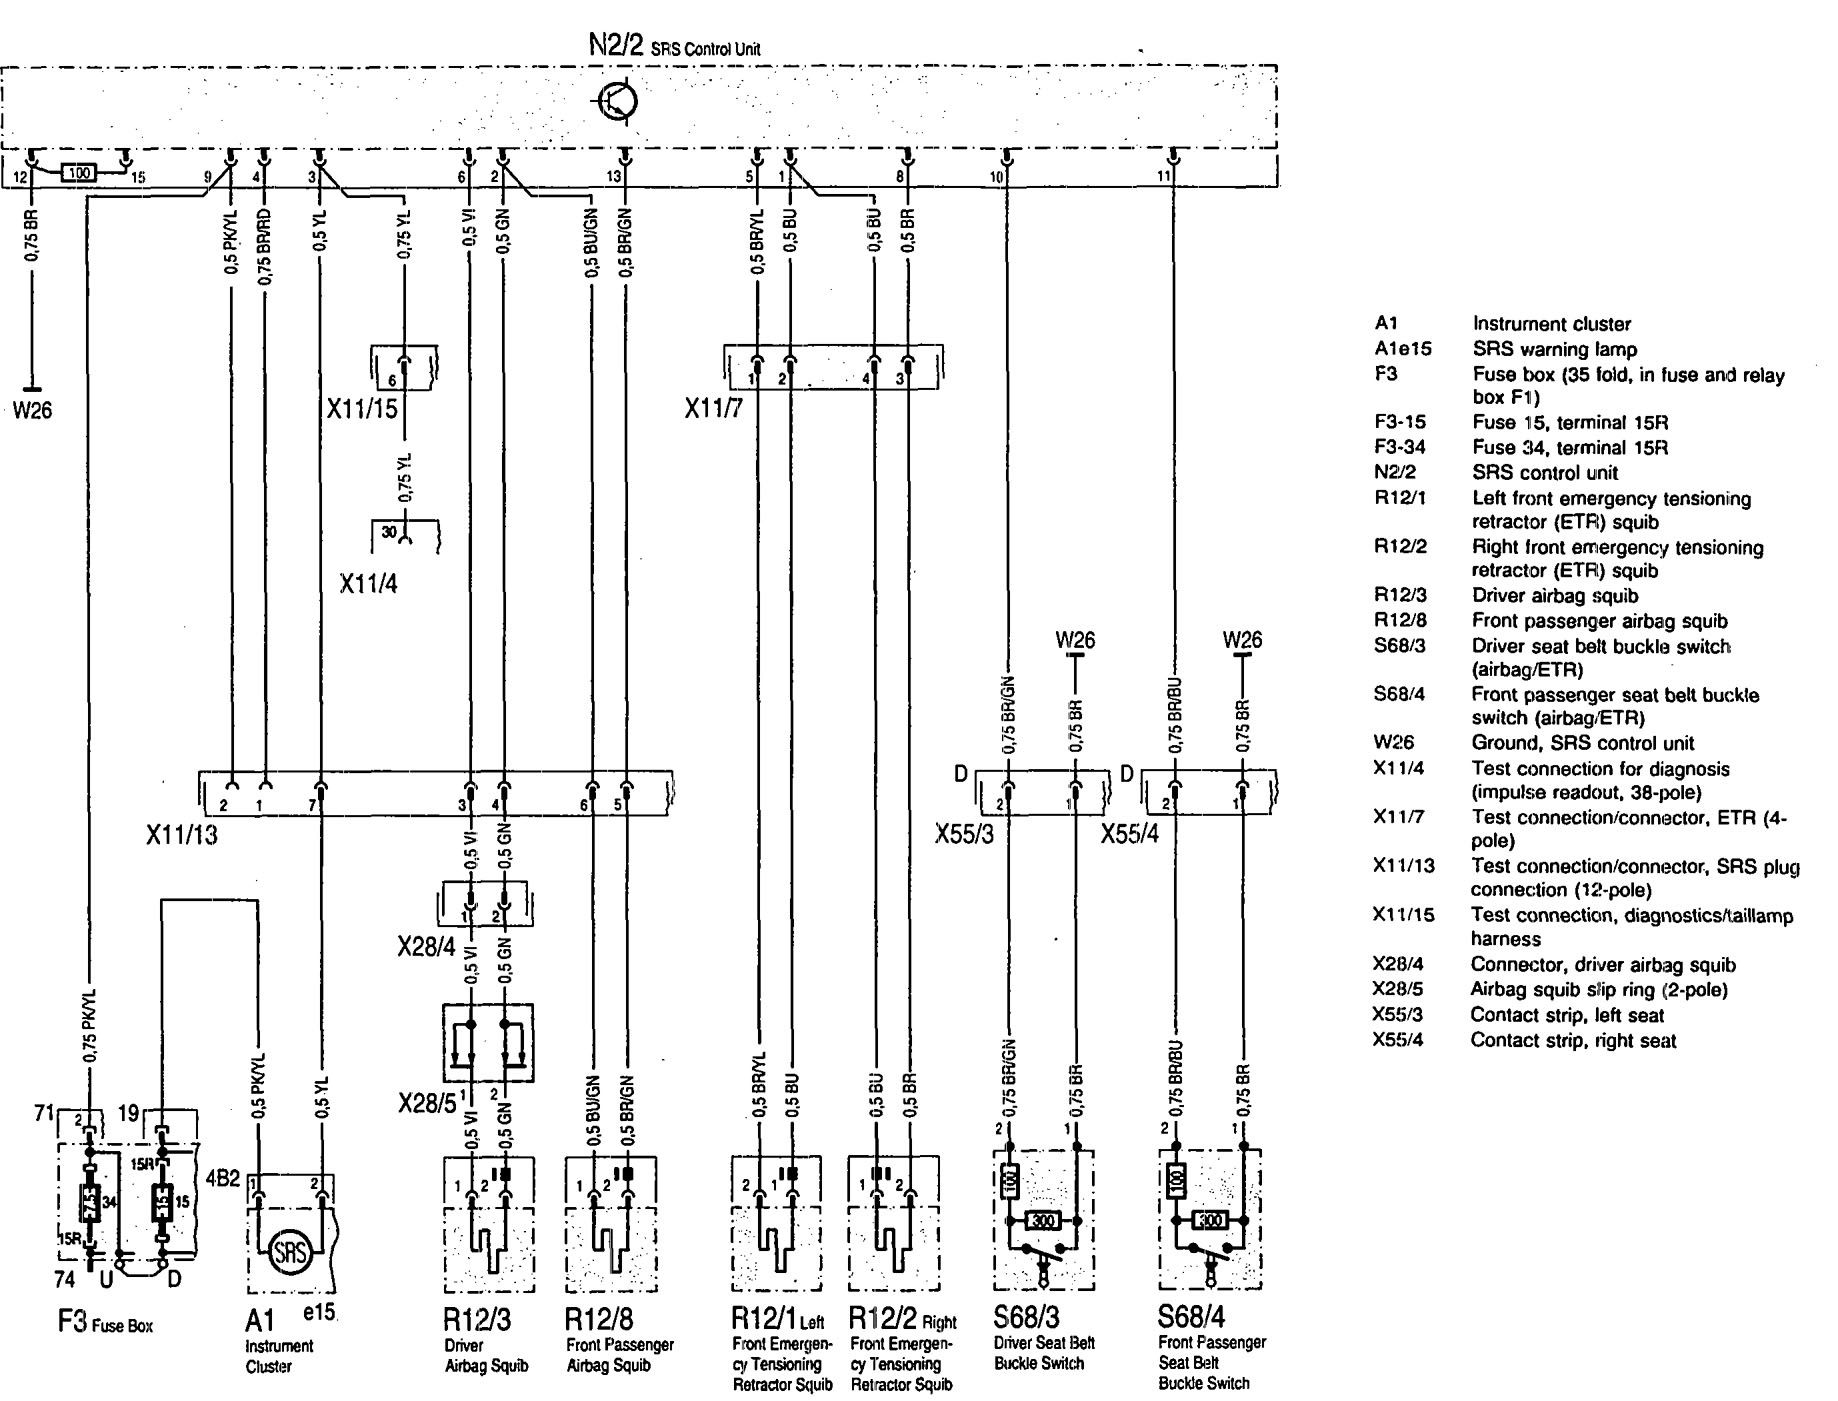 Mercedes Benz W204 Wiring Diagram Library Auber Pid 1540 As Well Of Diagrams 1 Together With